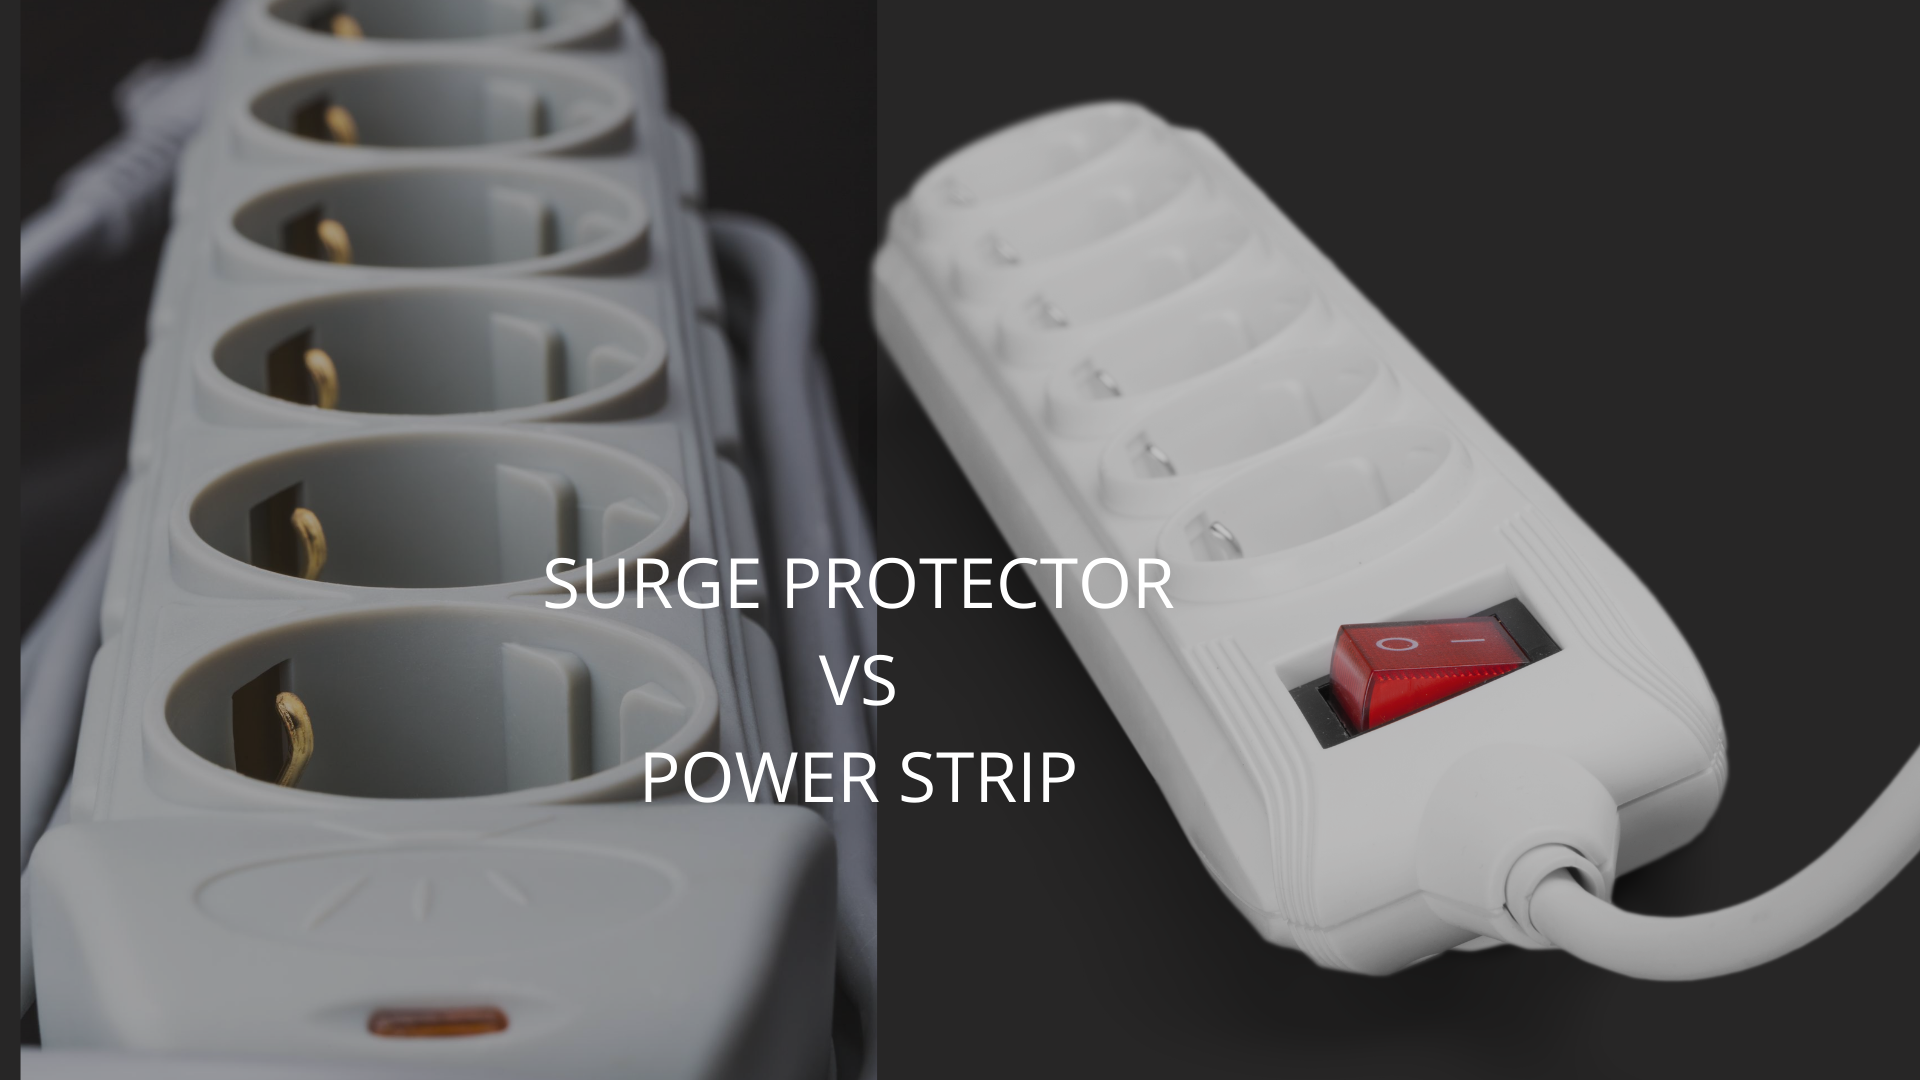 difference between a surge protector and power strip